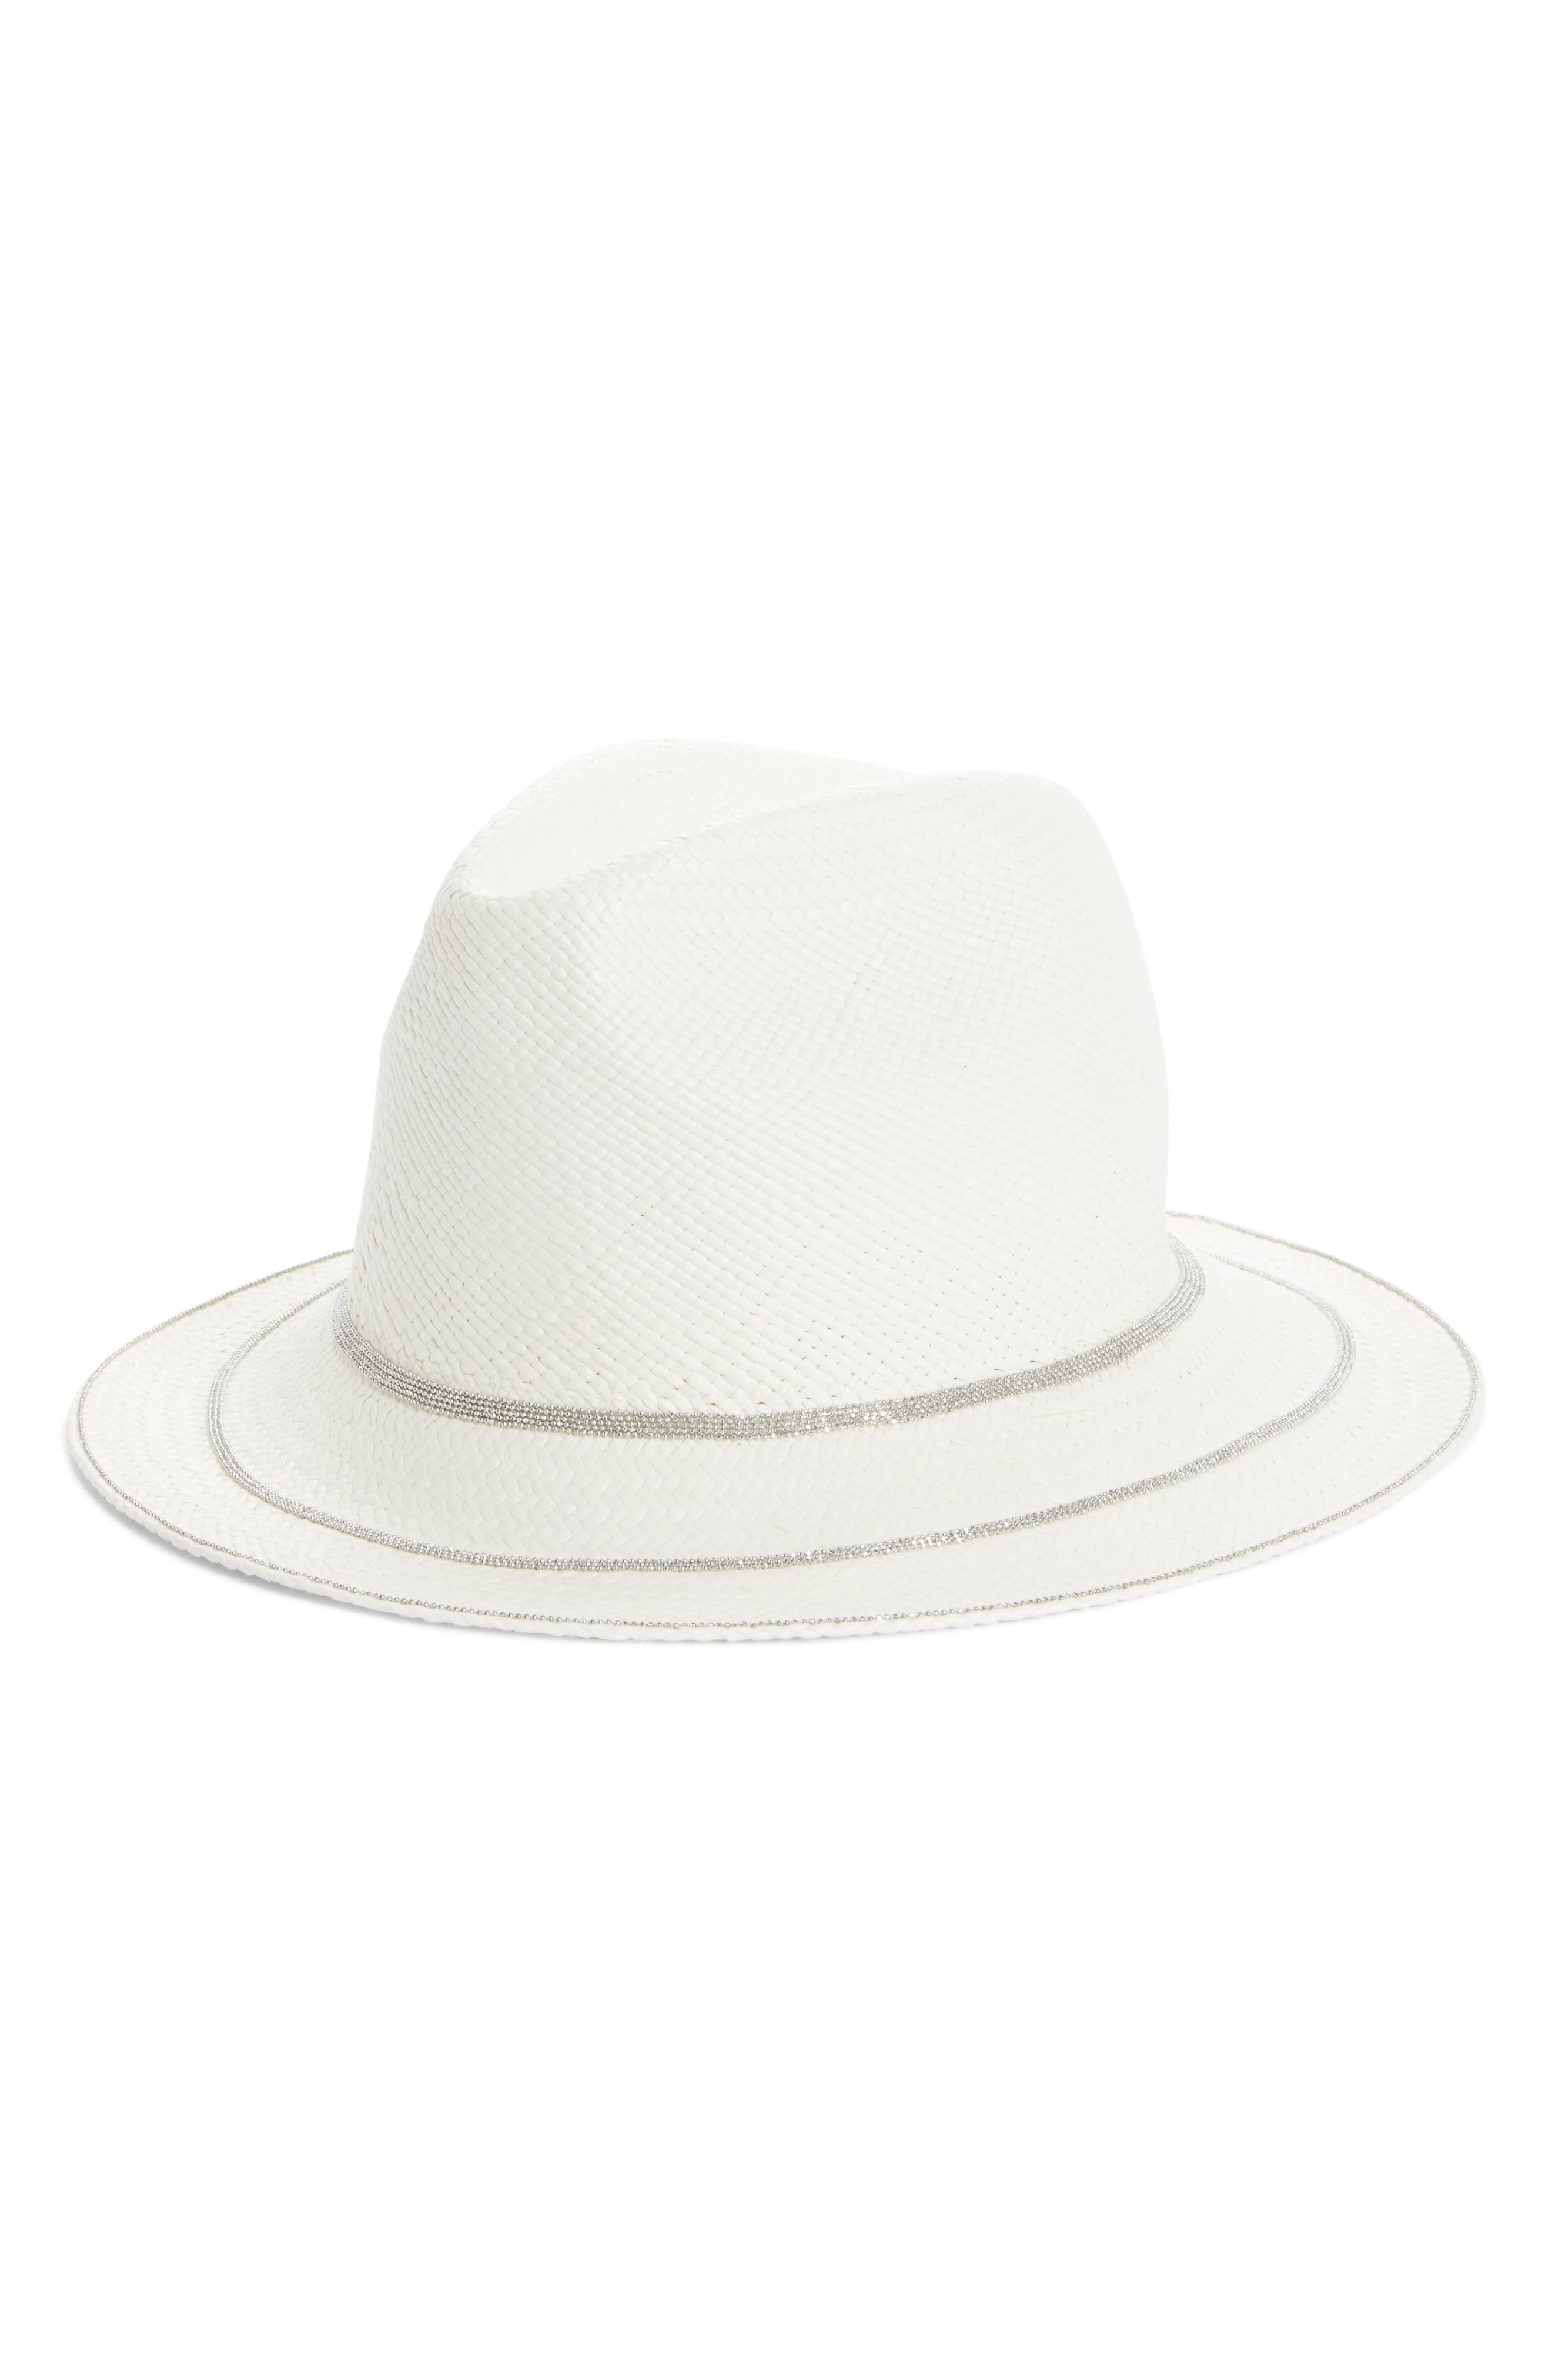 Triple Layer Bead Straw Hat,                         Main,                         color, White